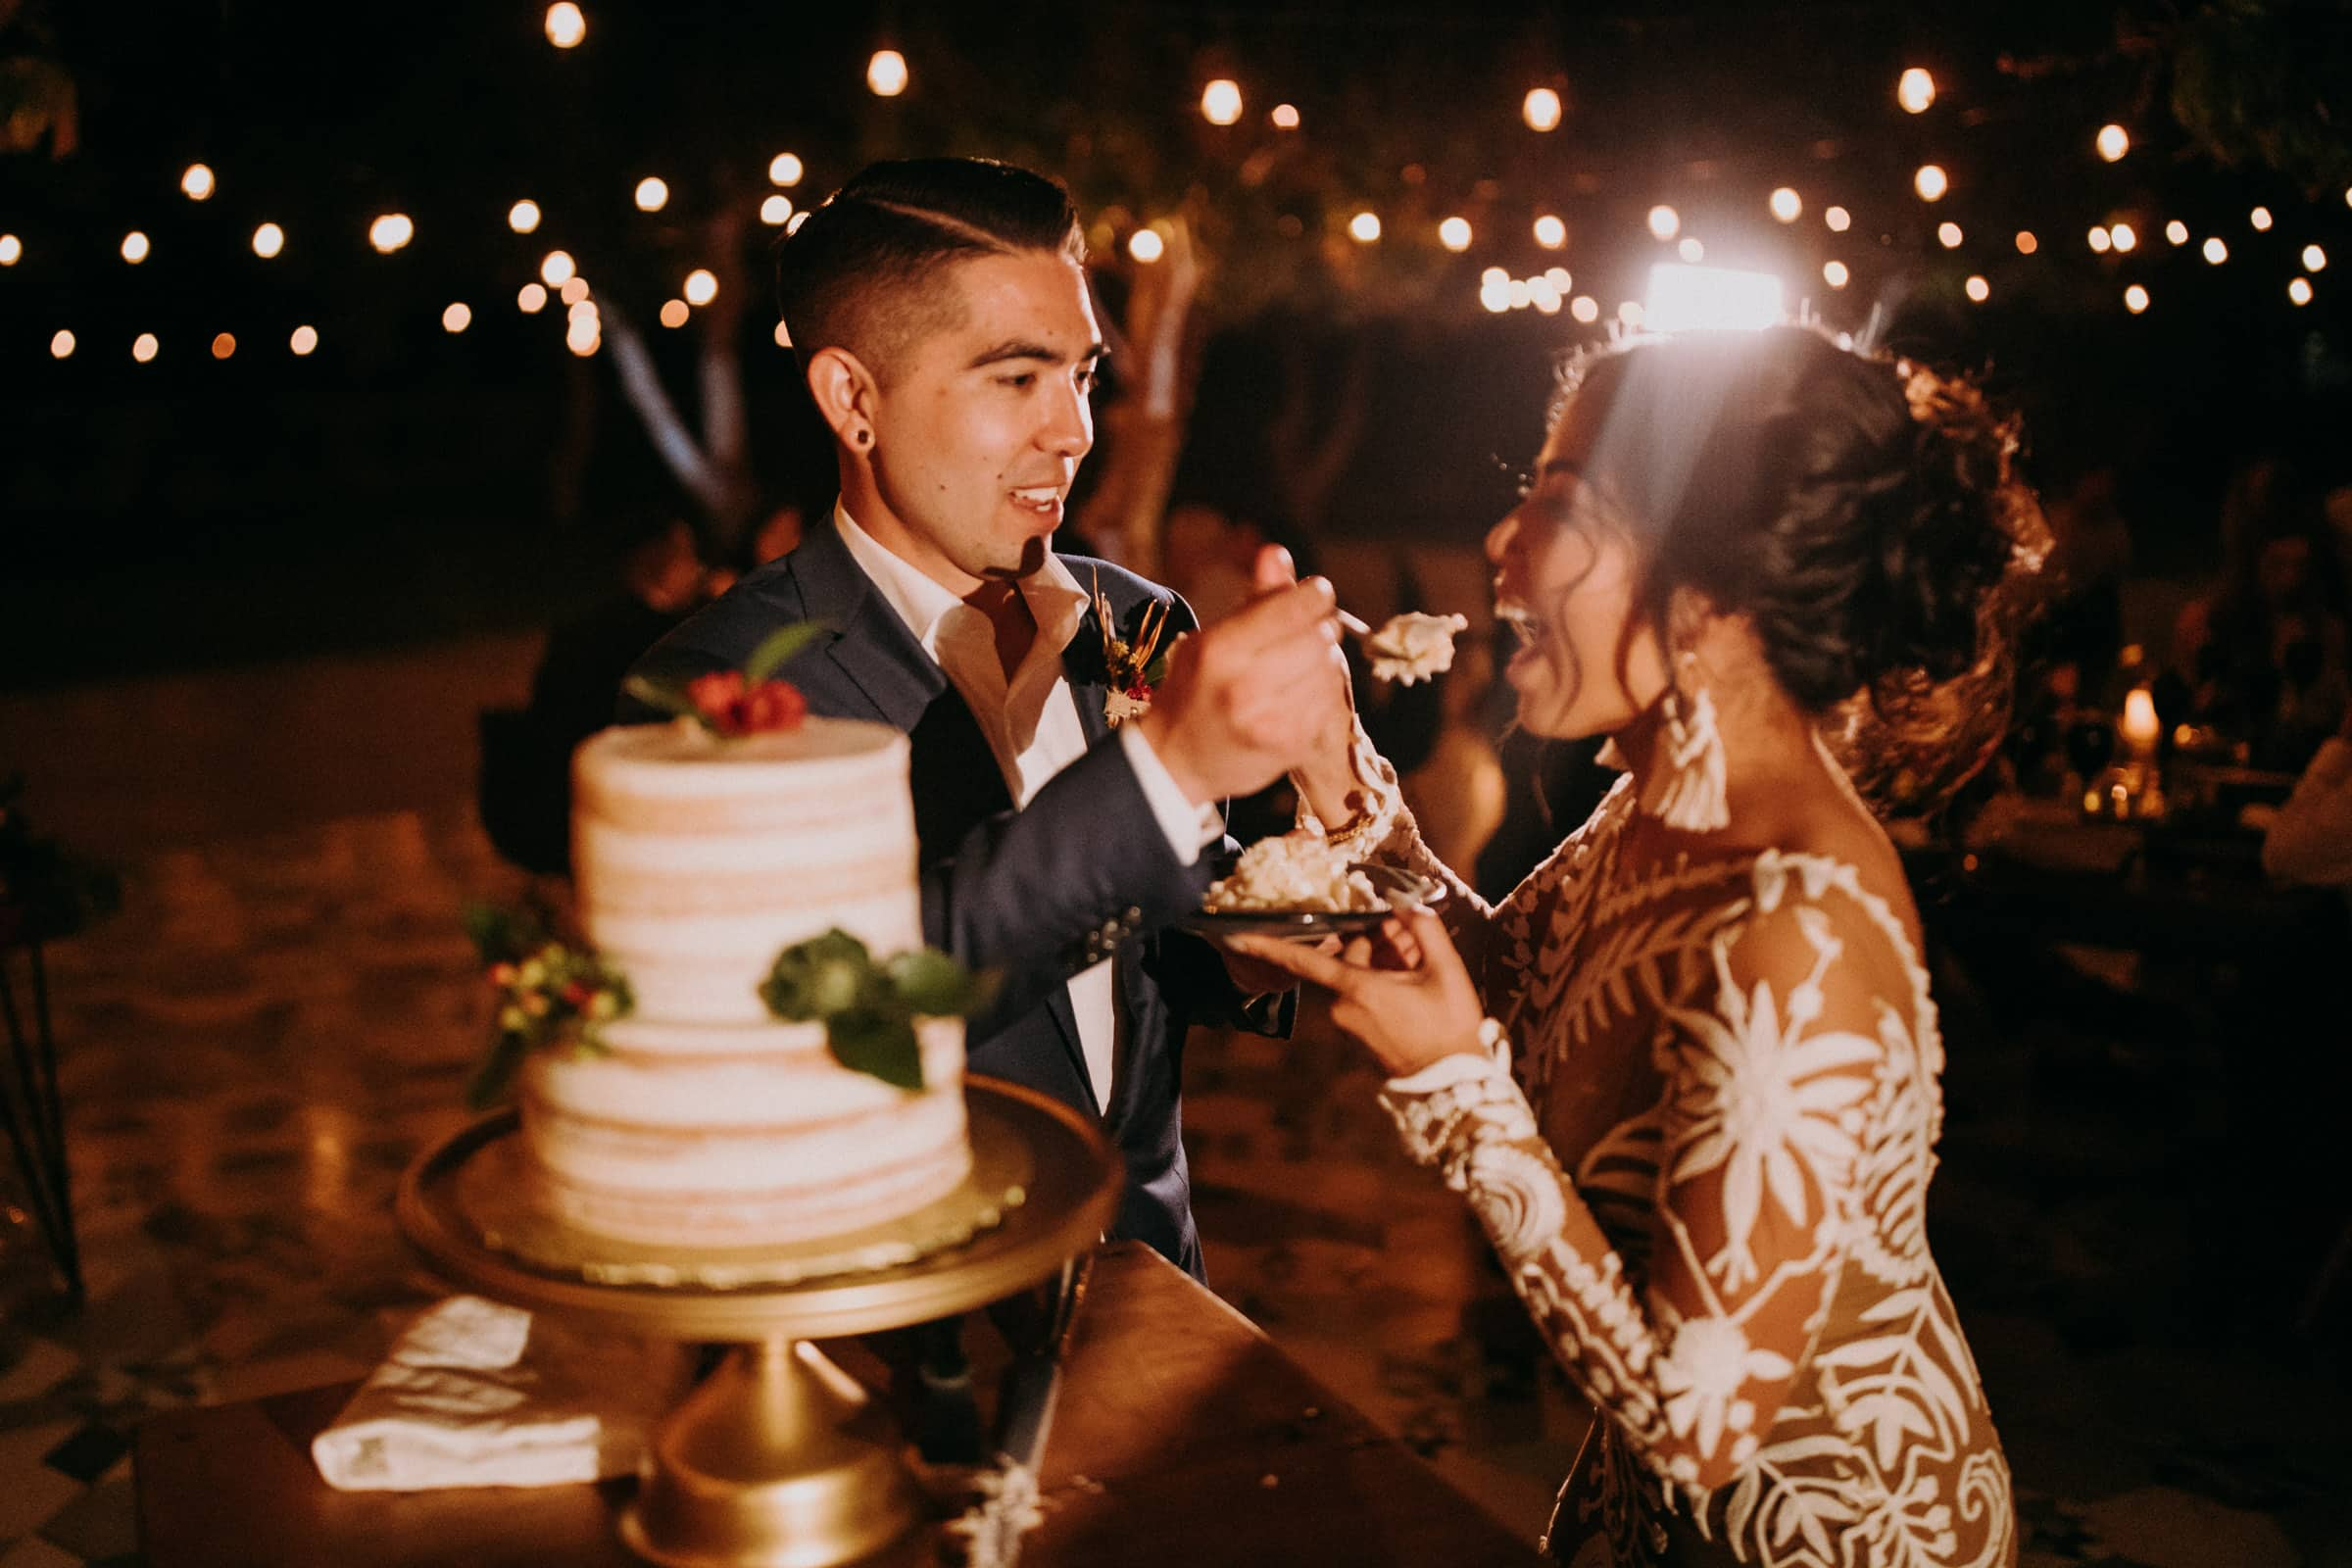 The wedding couple is tasting a spoon full of their wedding cake.